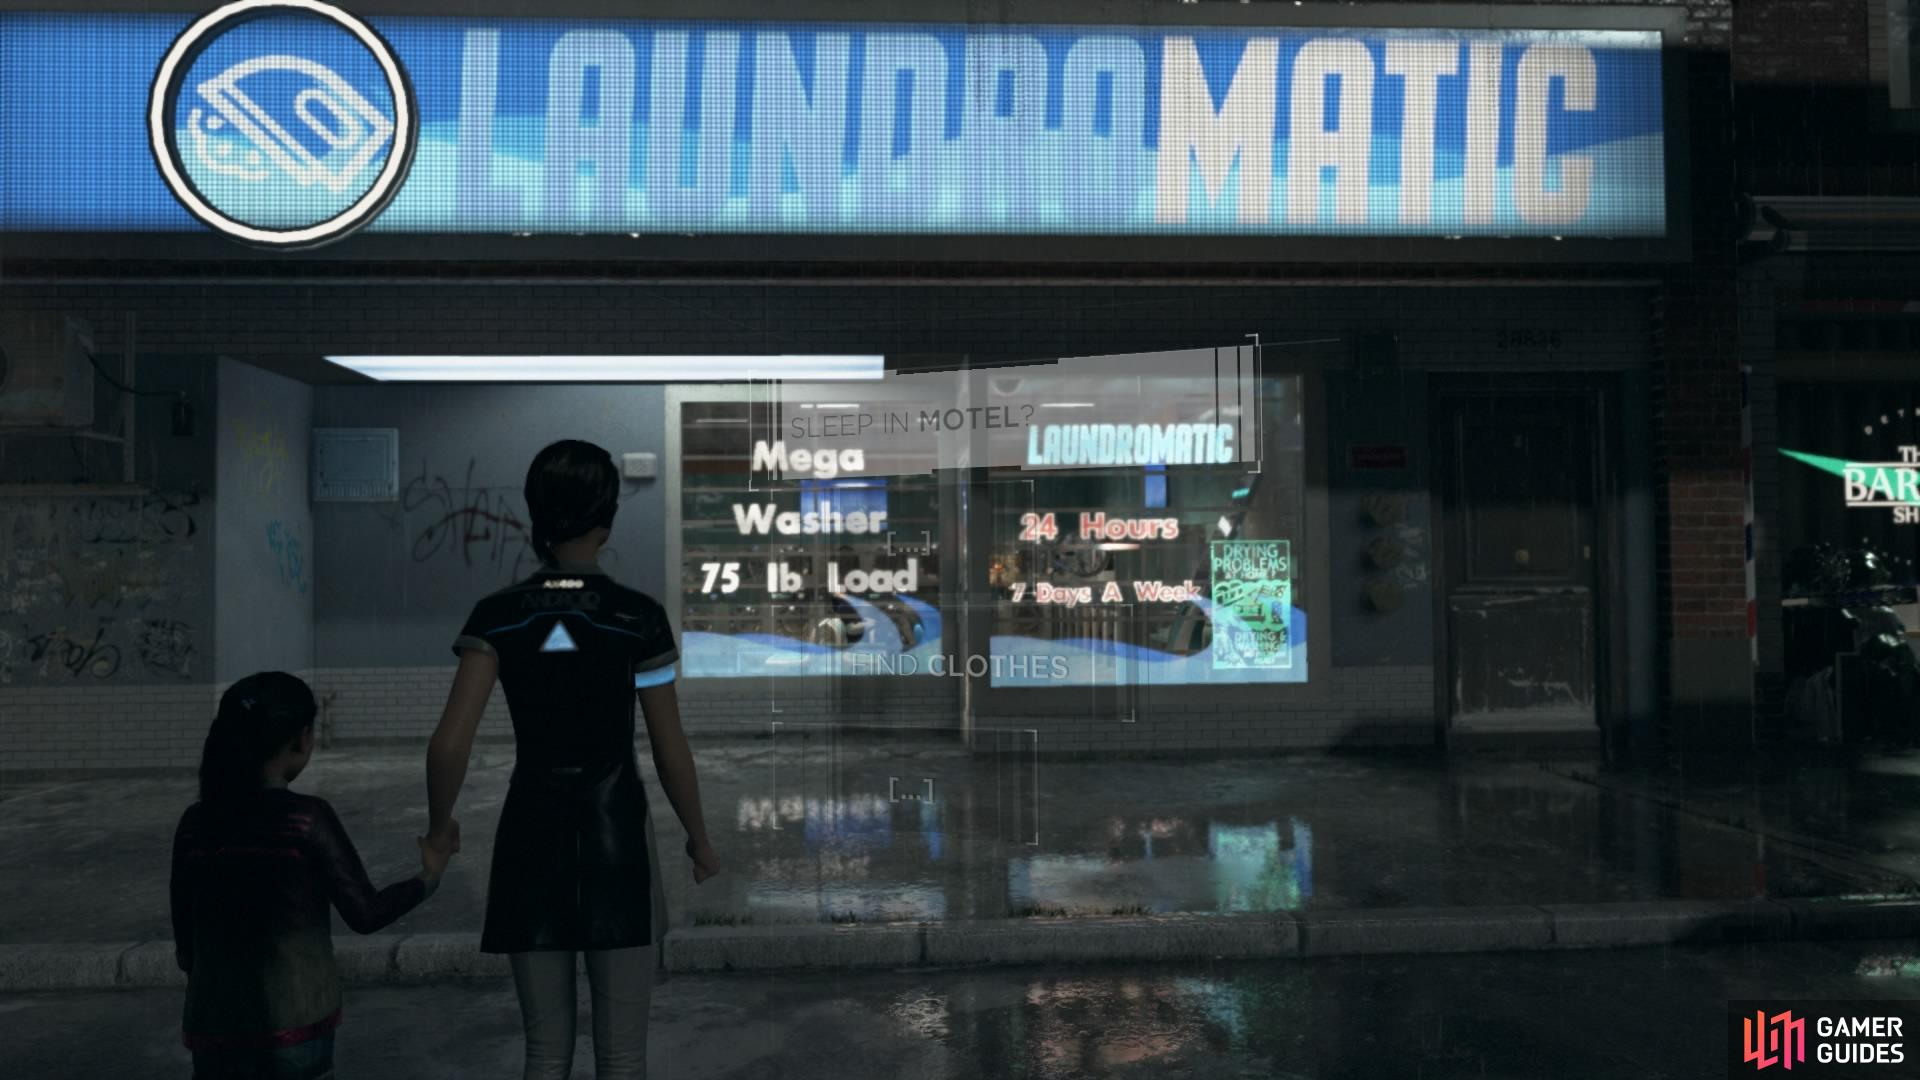 Enter the laundromat